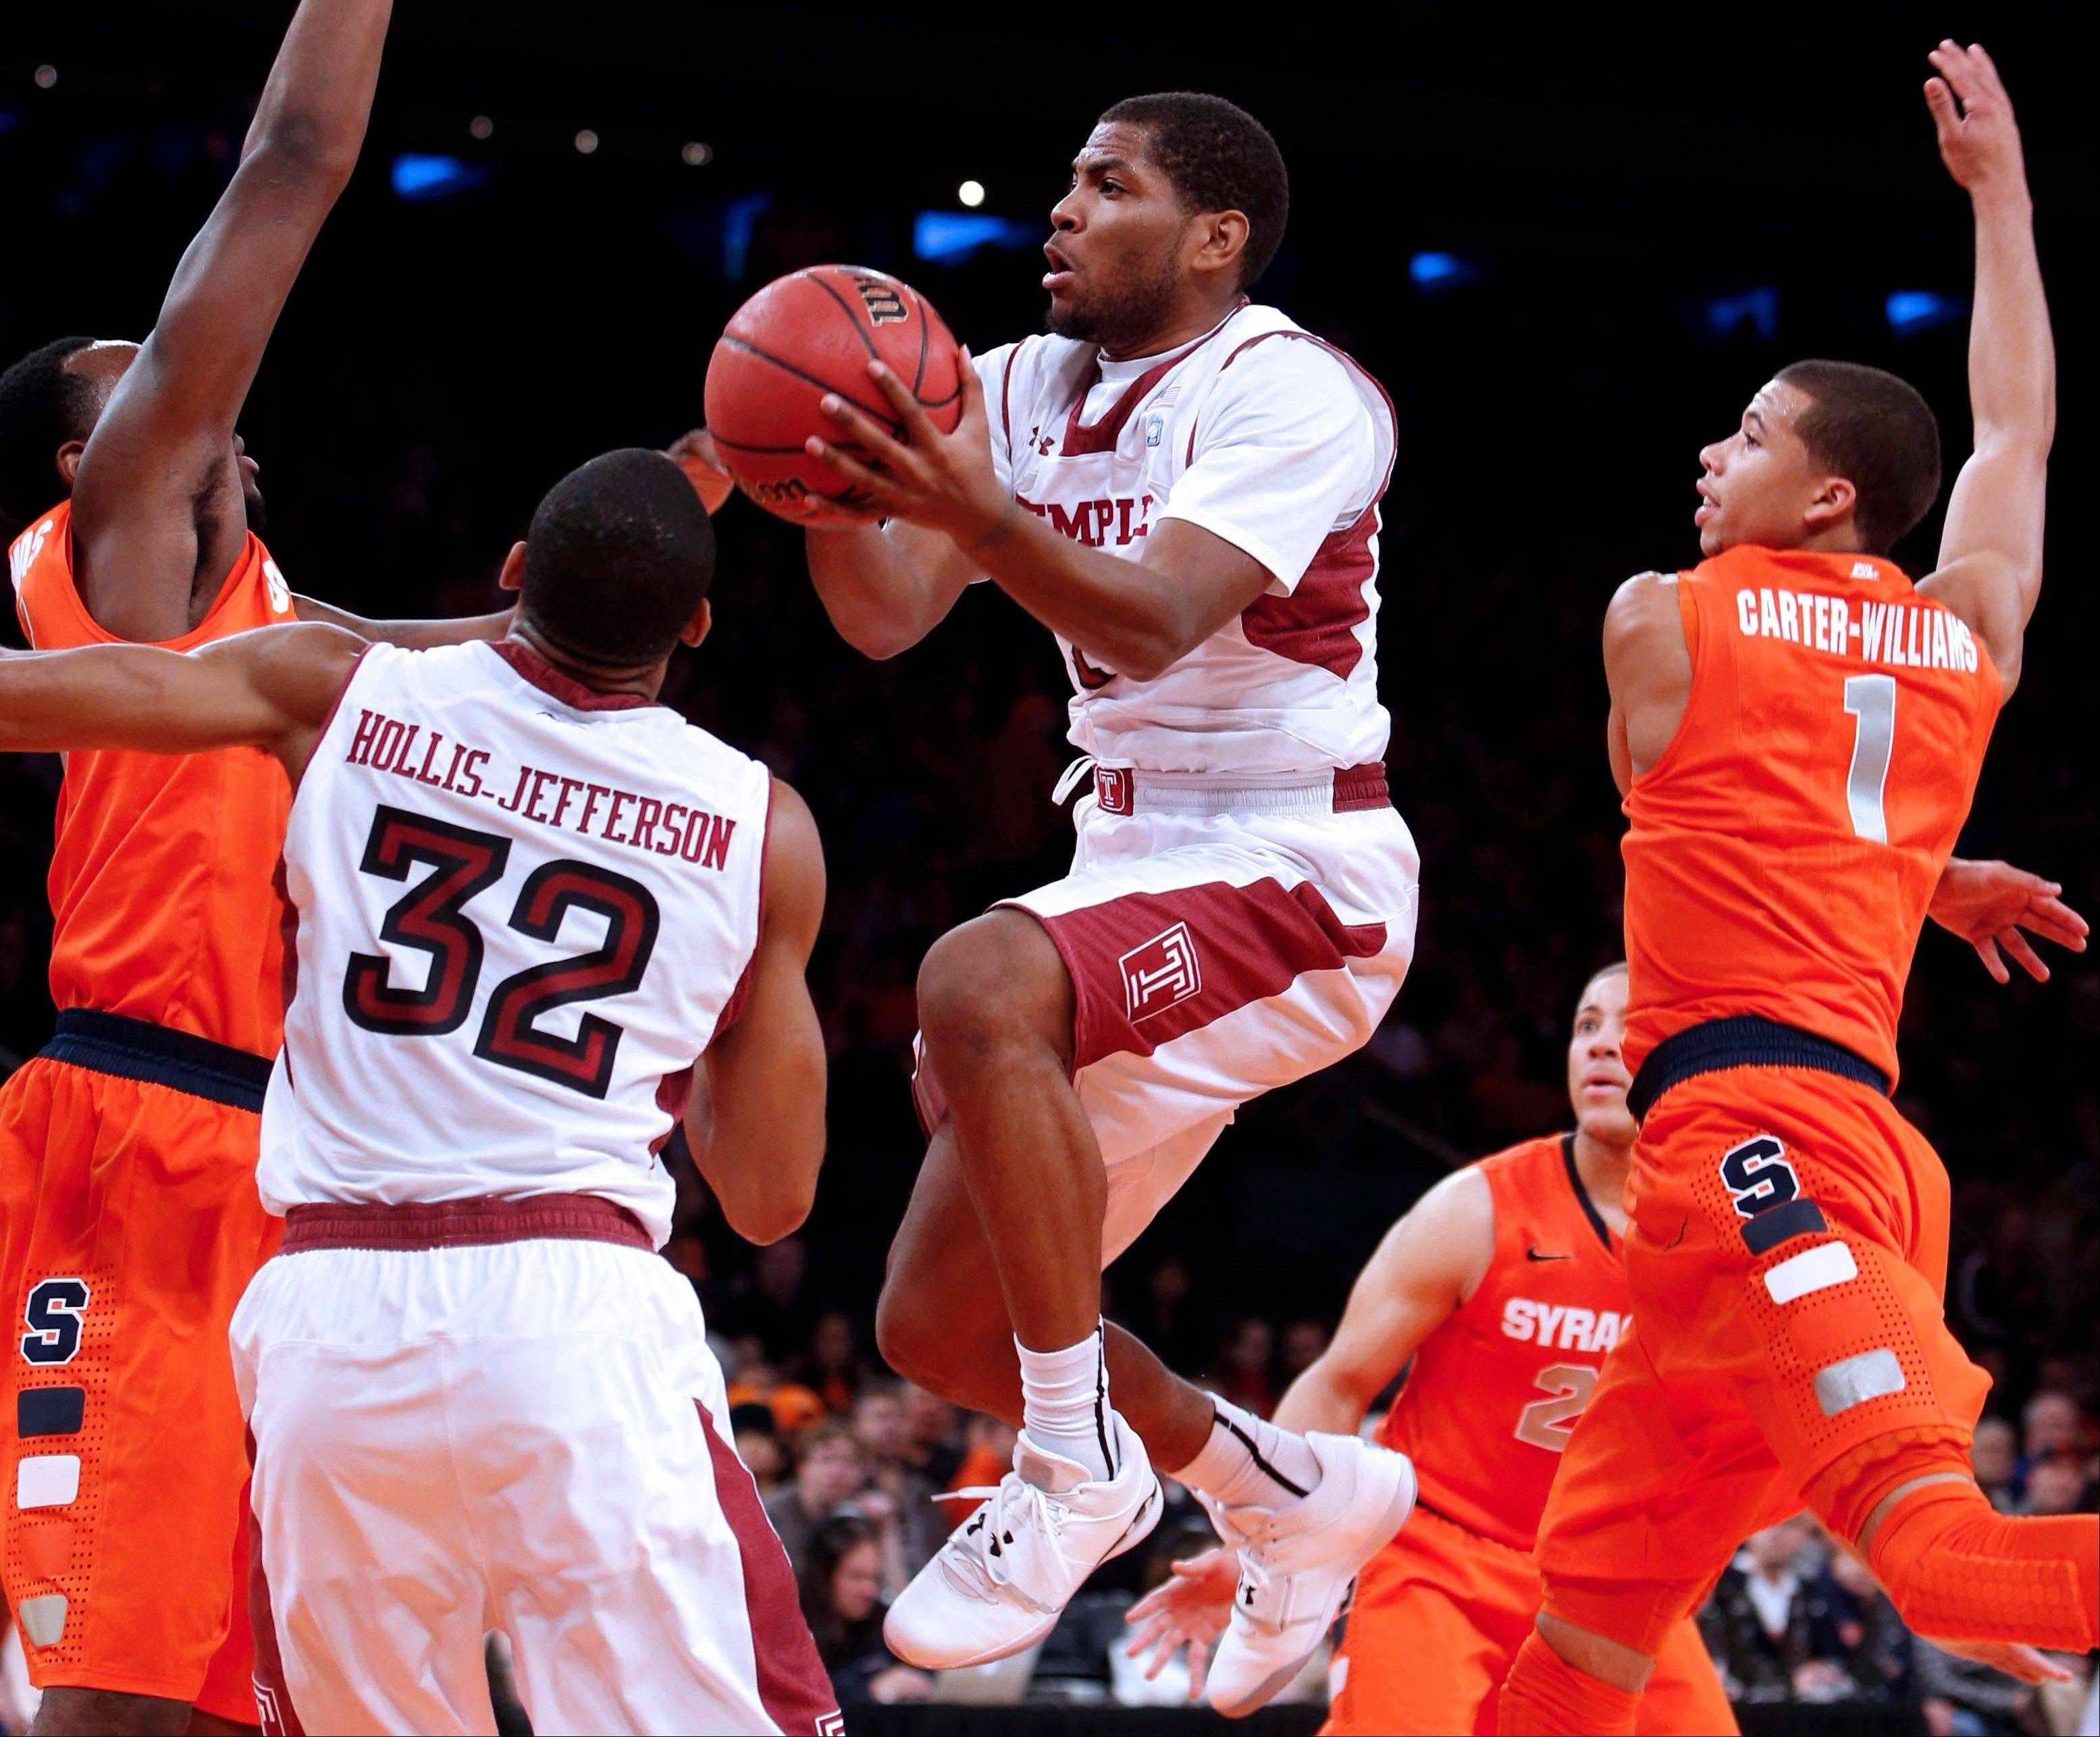 Temple�s Khalif Wyatt shoots against Syracuse�s Rakeem Christmas, left, and Michael Carter-Williams (1) during the first half in the Gotham Classic tournament at Madison Square Garden, Saturday in New York. Temple defeated Syracuse 83-79.